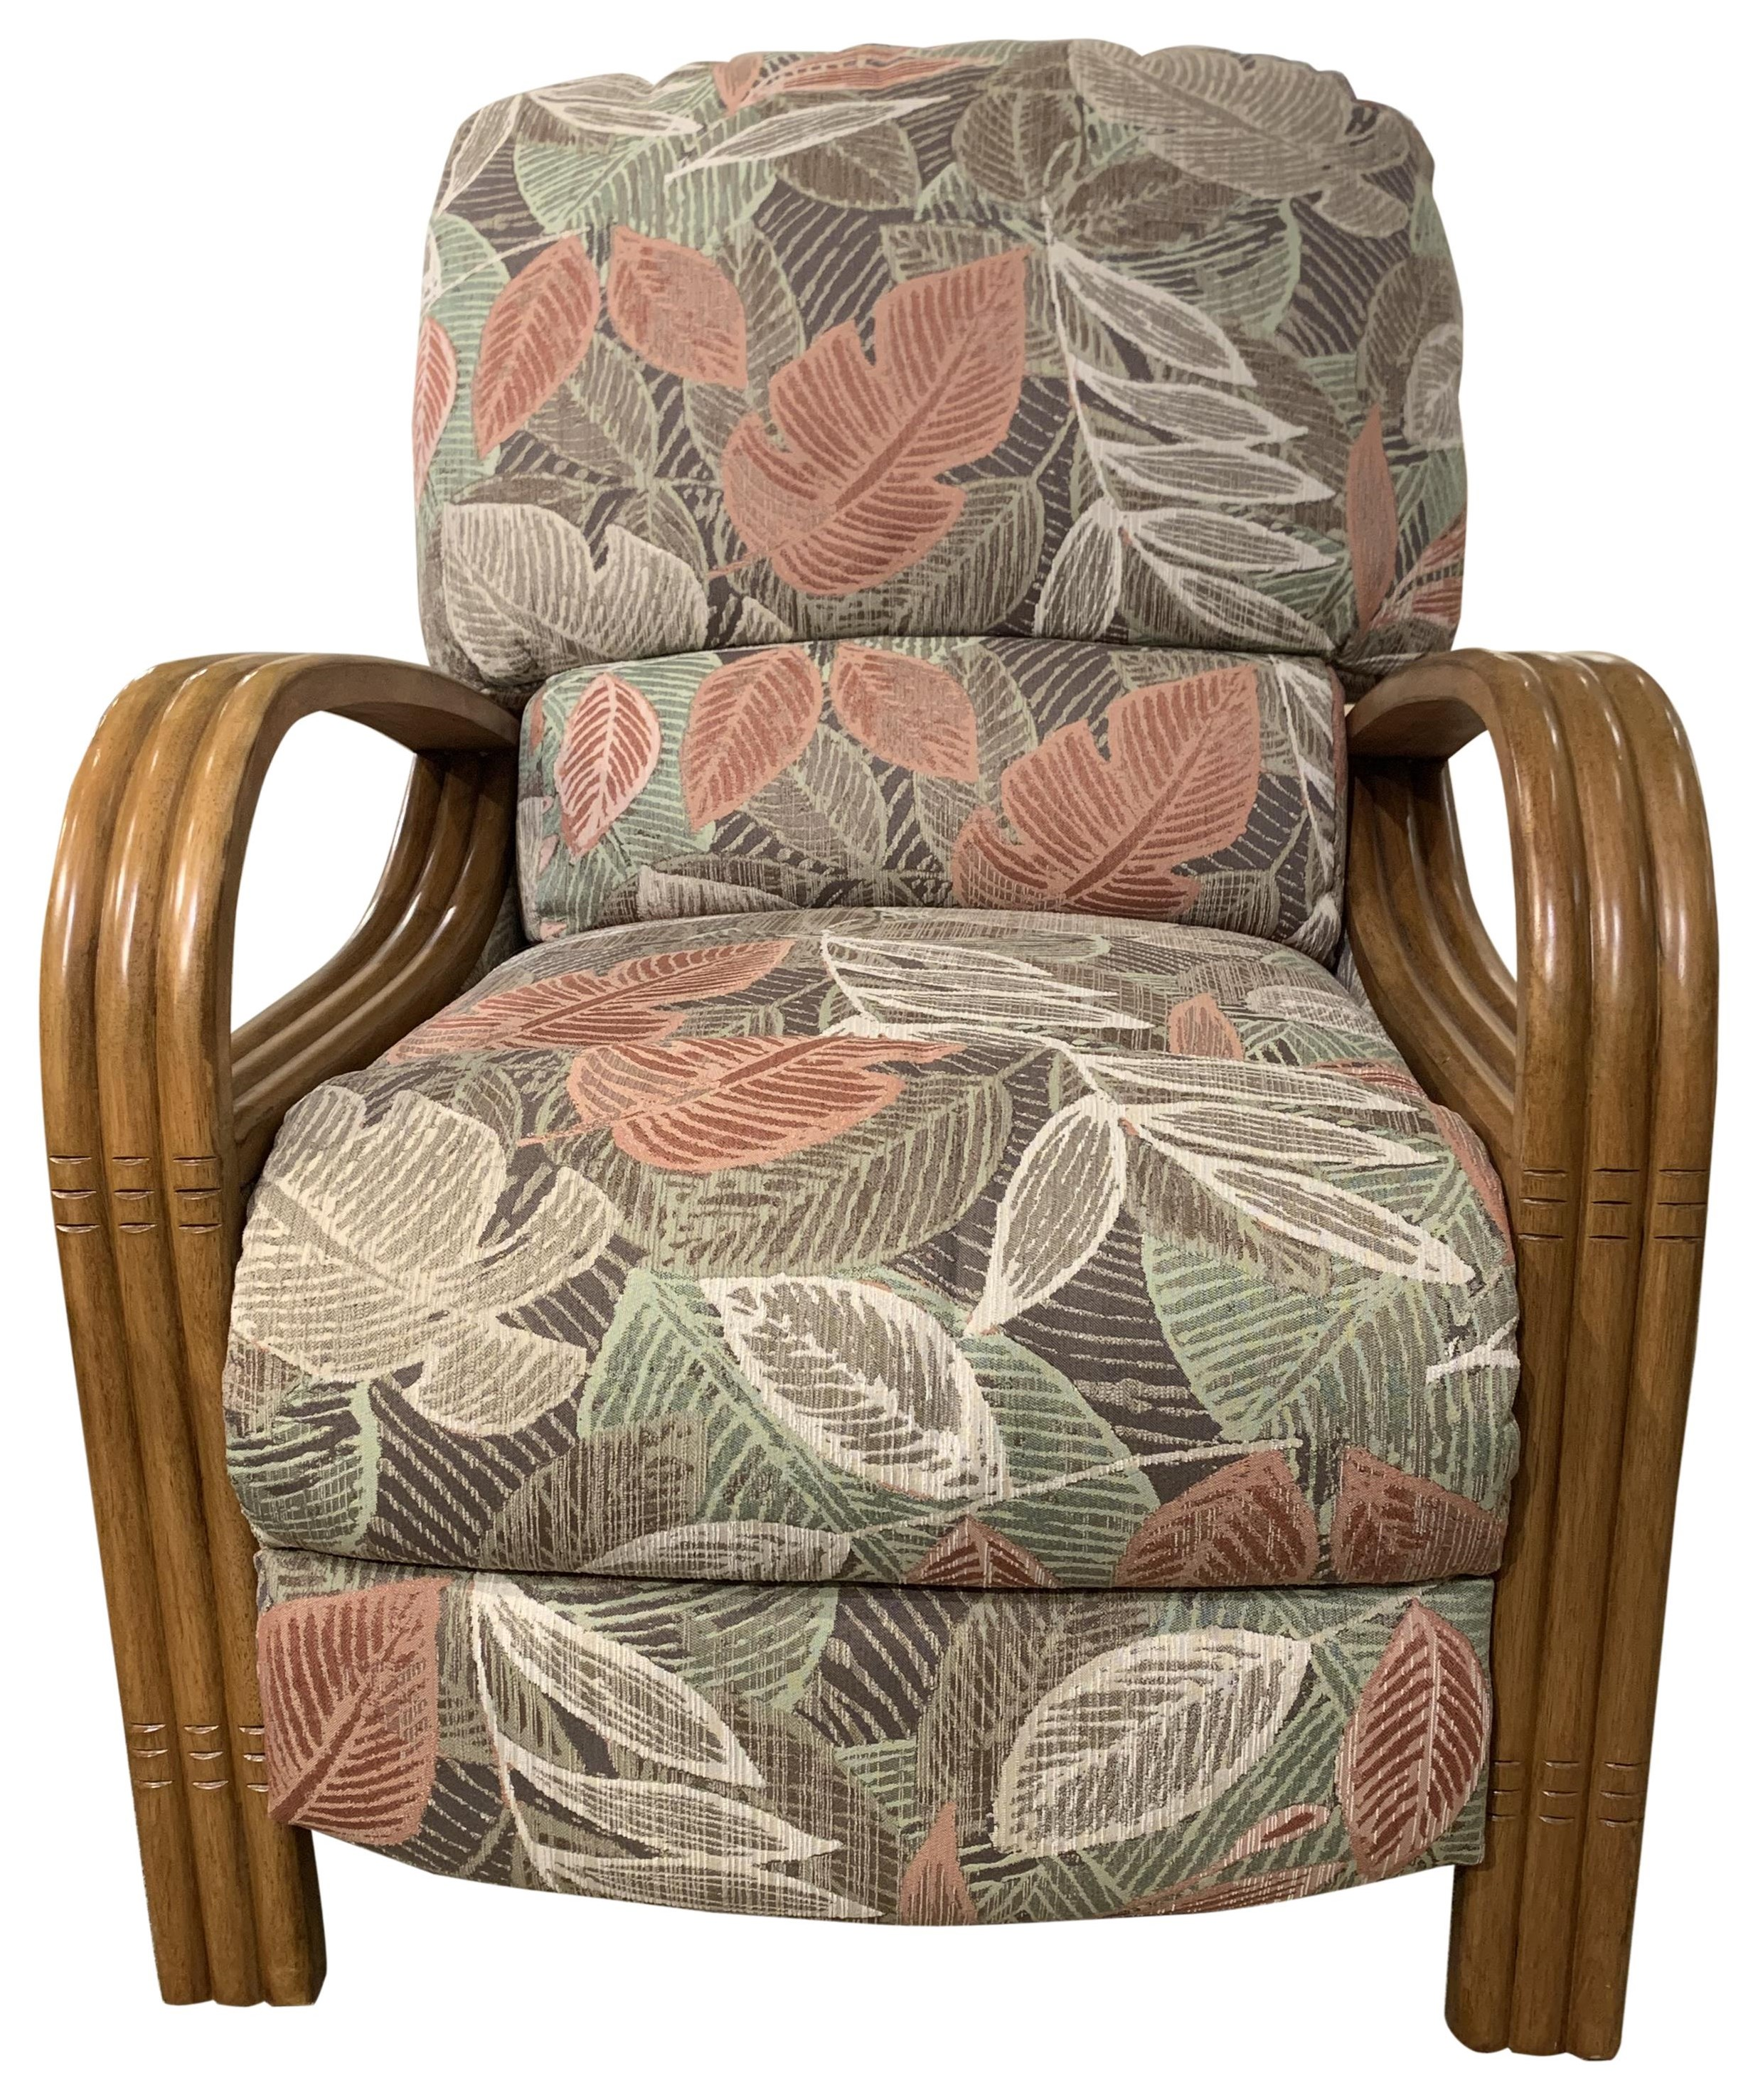 Key Largo Pushback Chair by Synergy Home Furnishings at HomeWorld Furniture